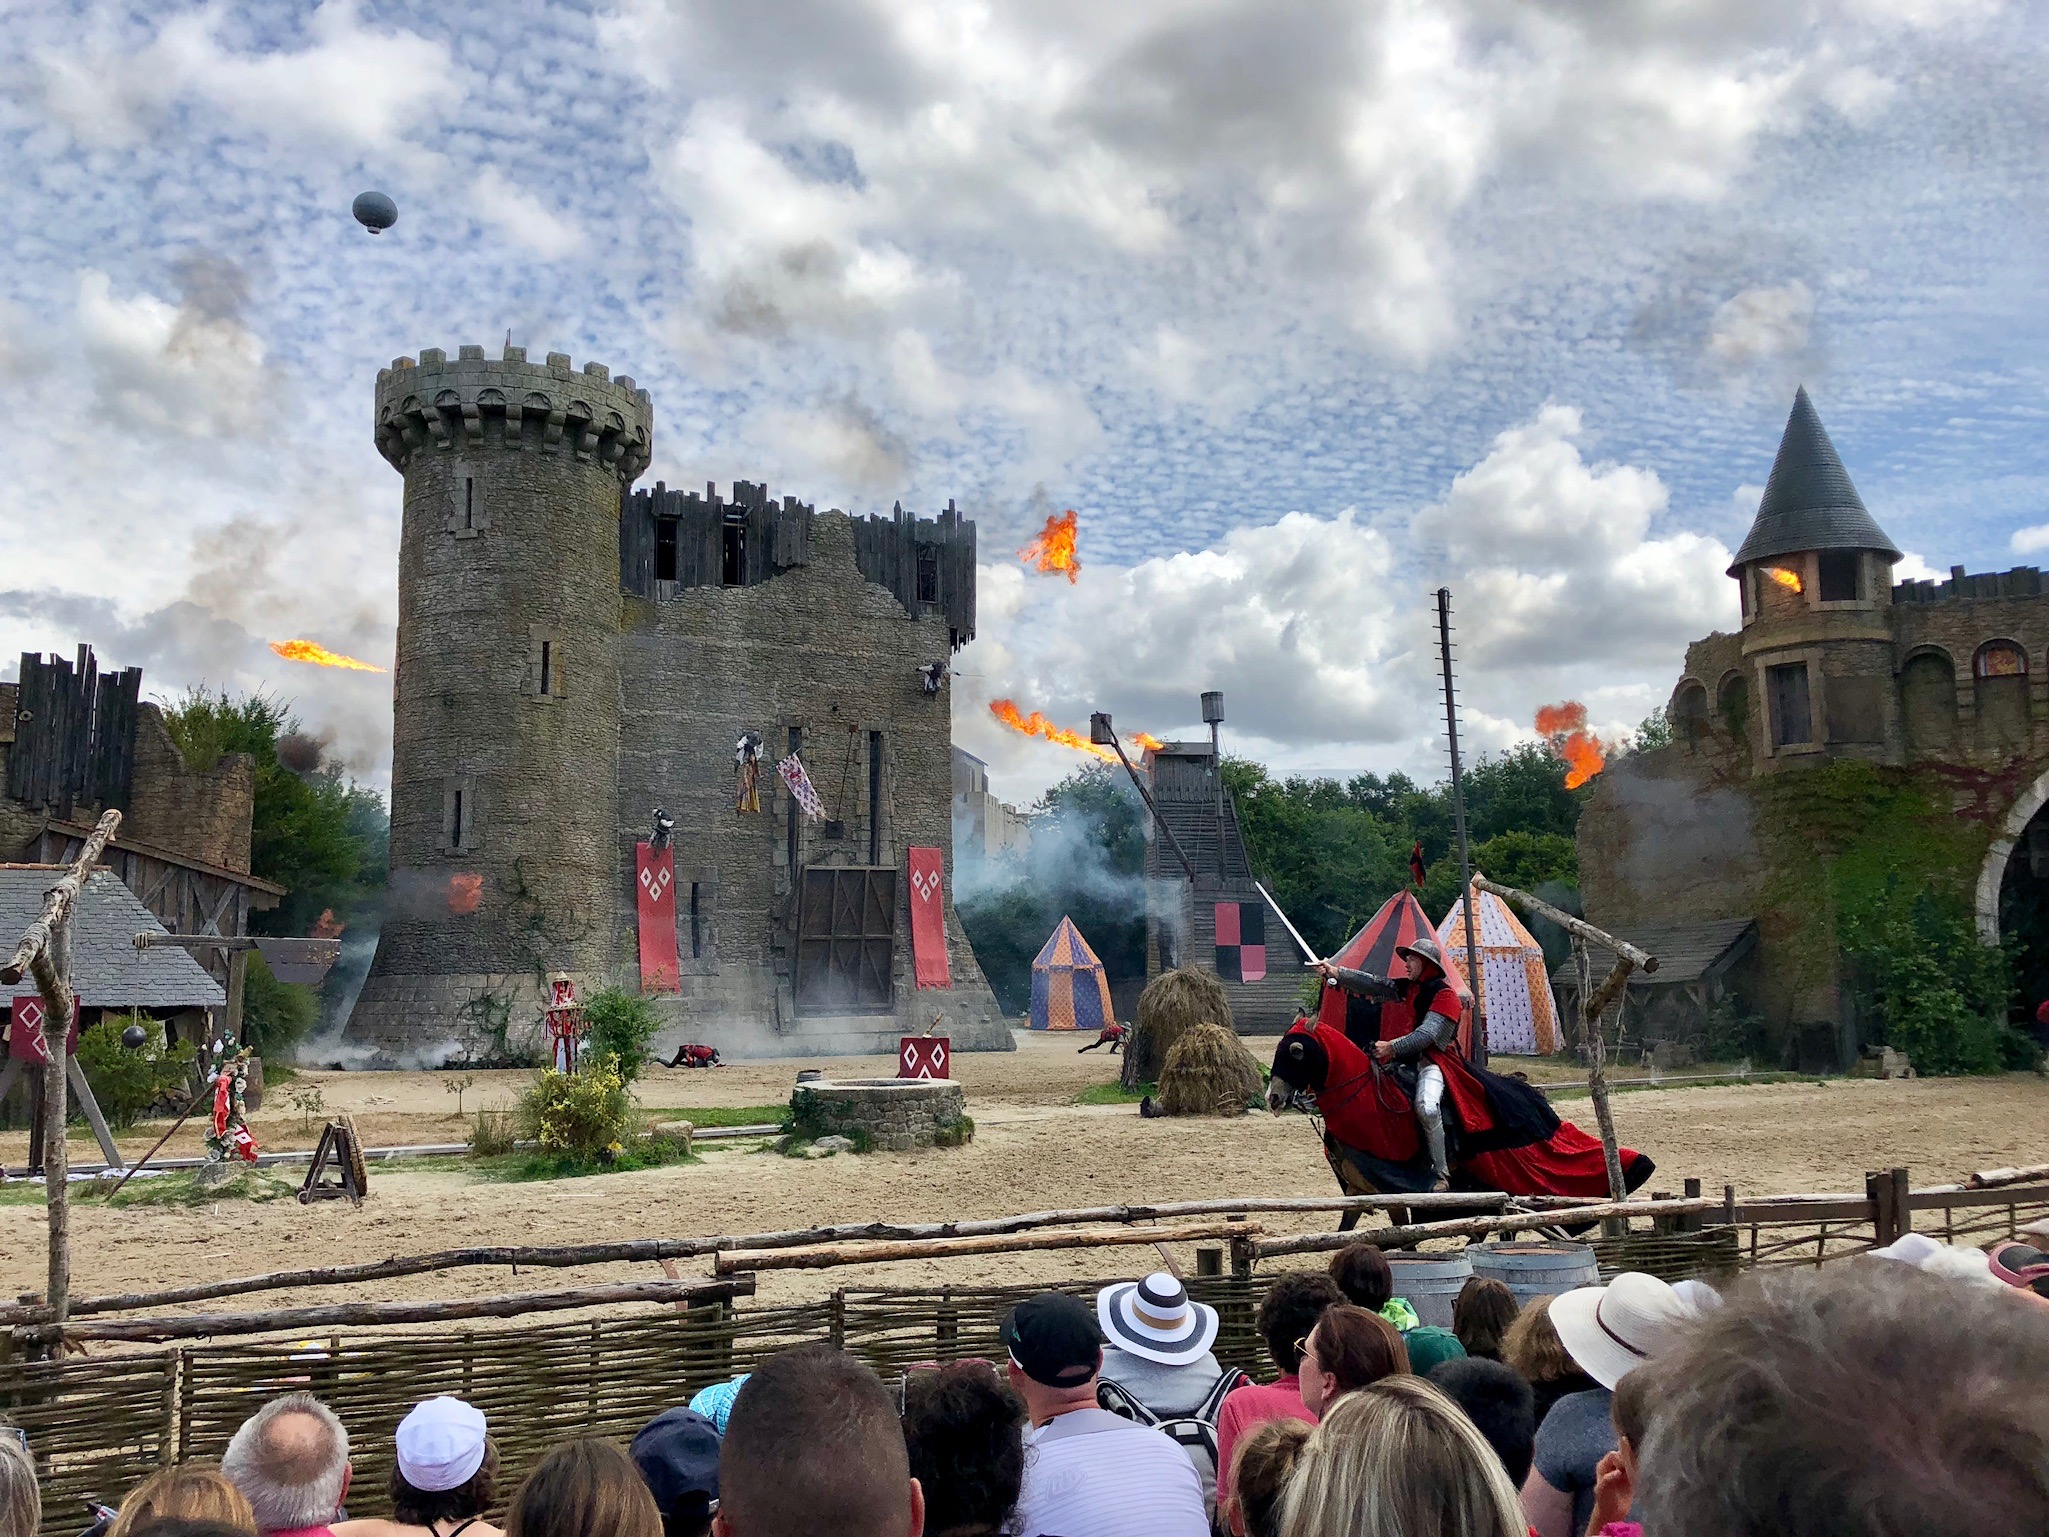 Scene from Secret of the Lance, Puy du Fou, France